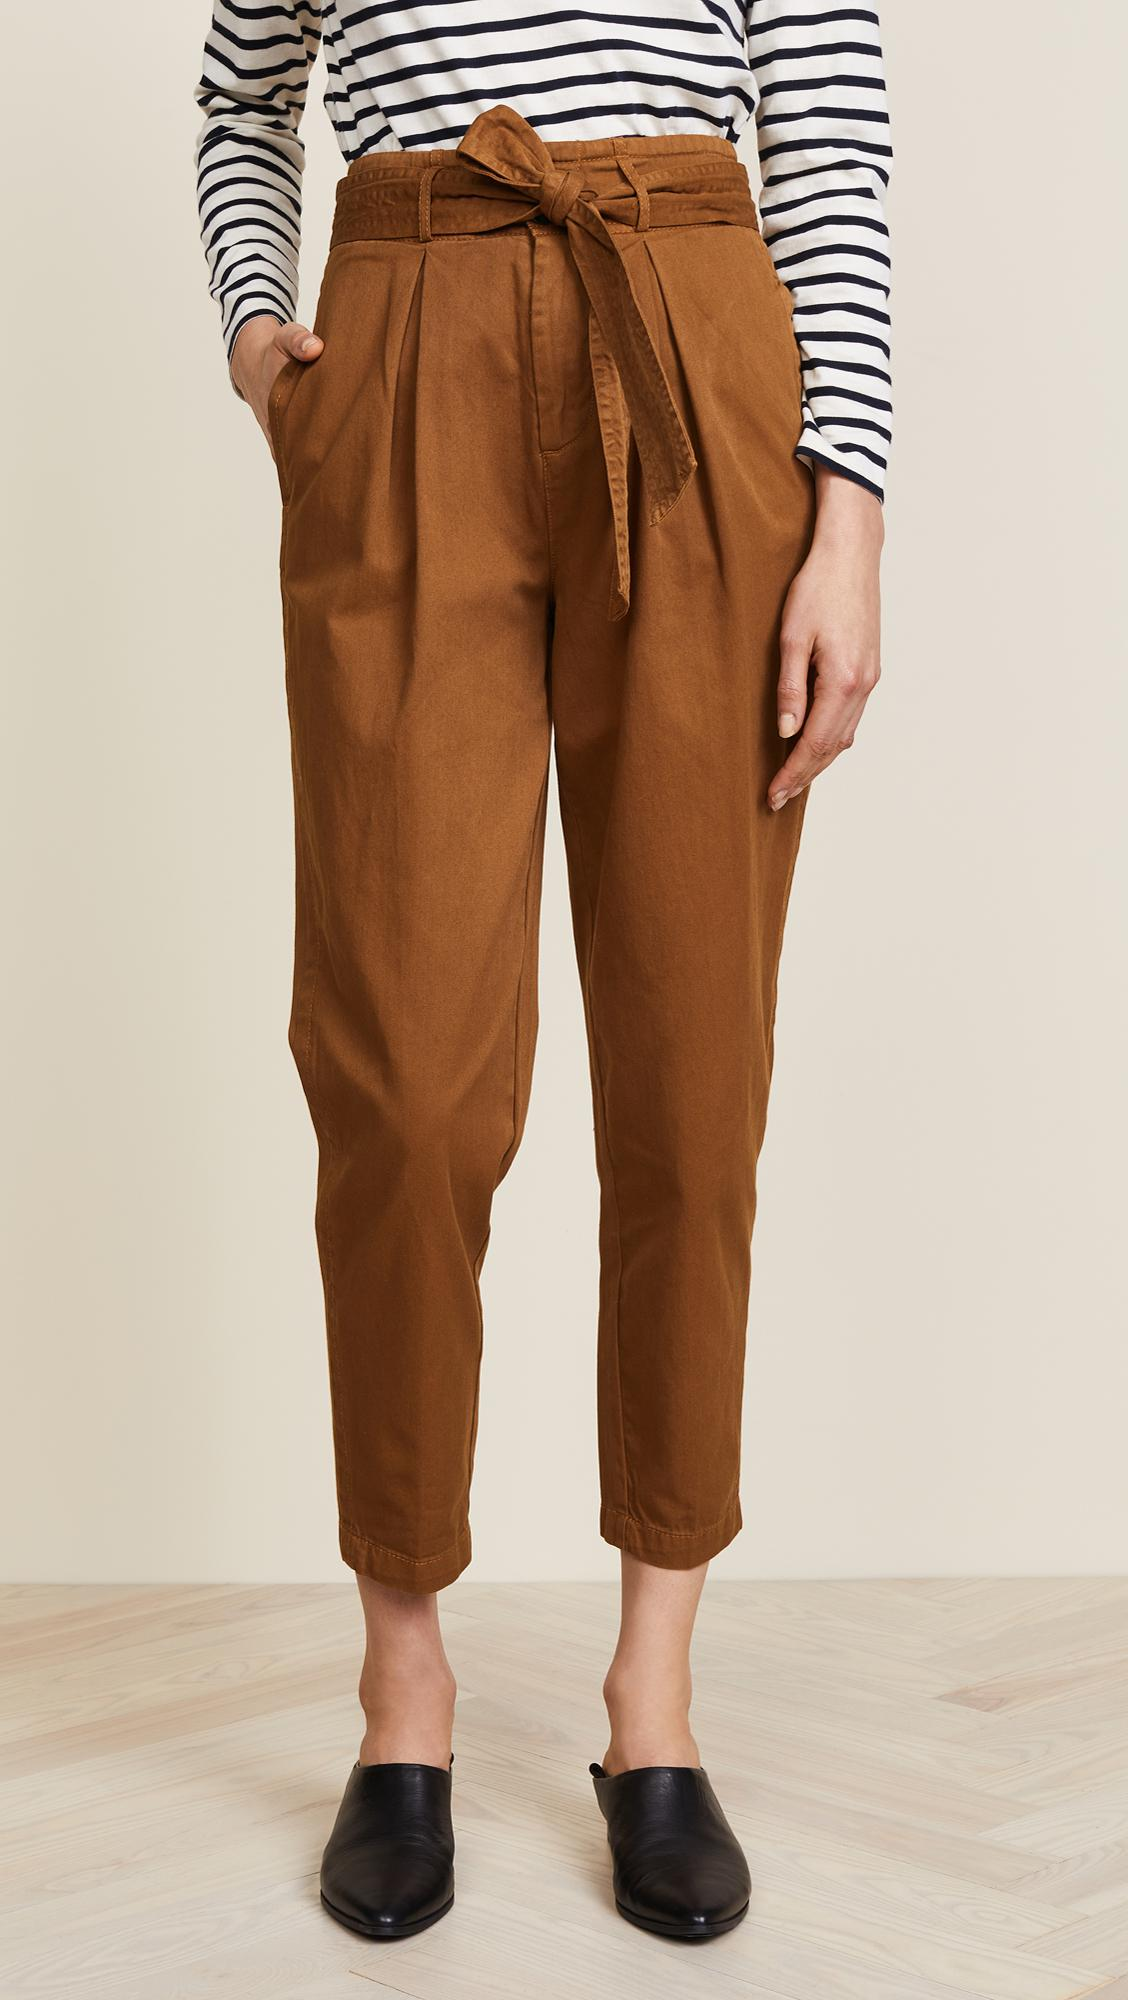 free people cotton high waist pegged '90s pants in brown